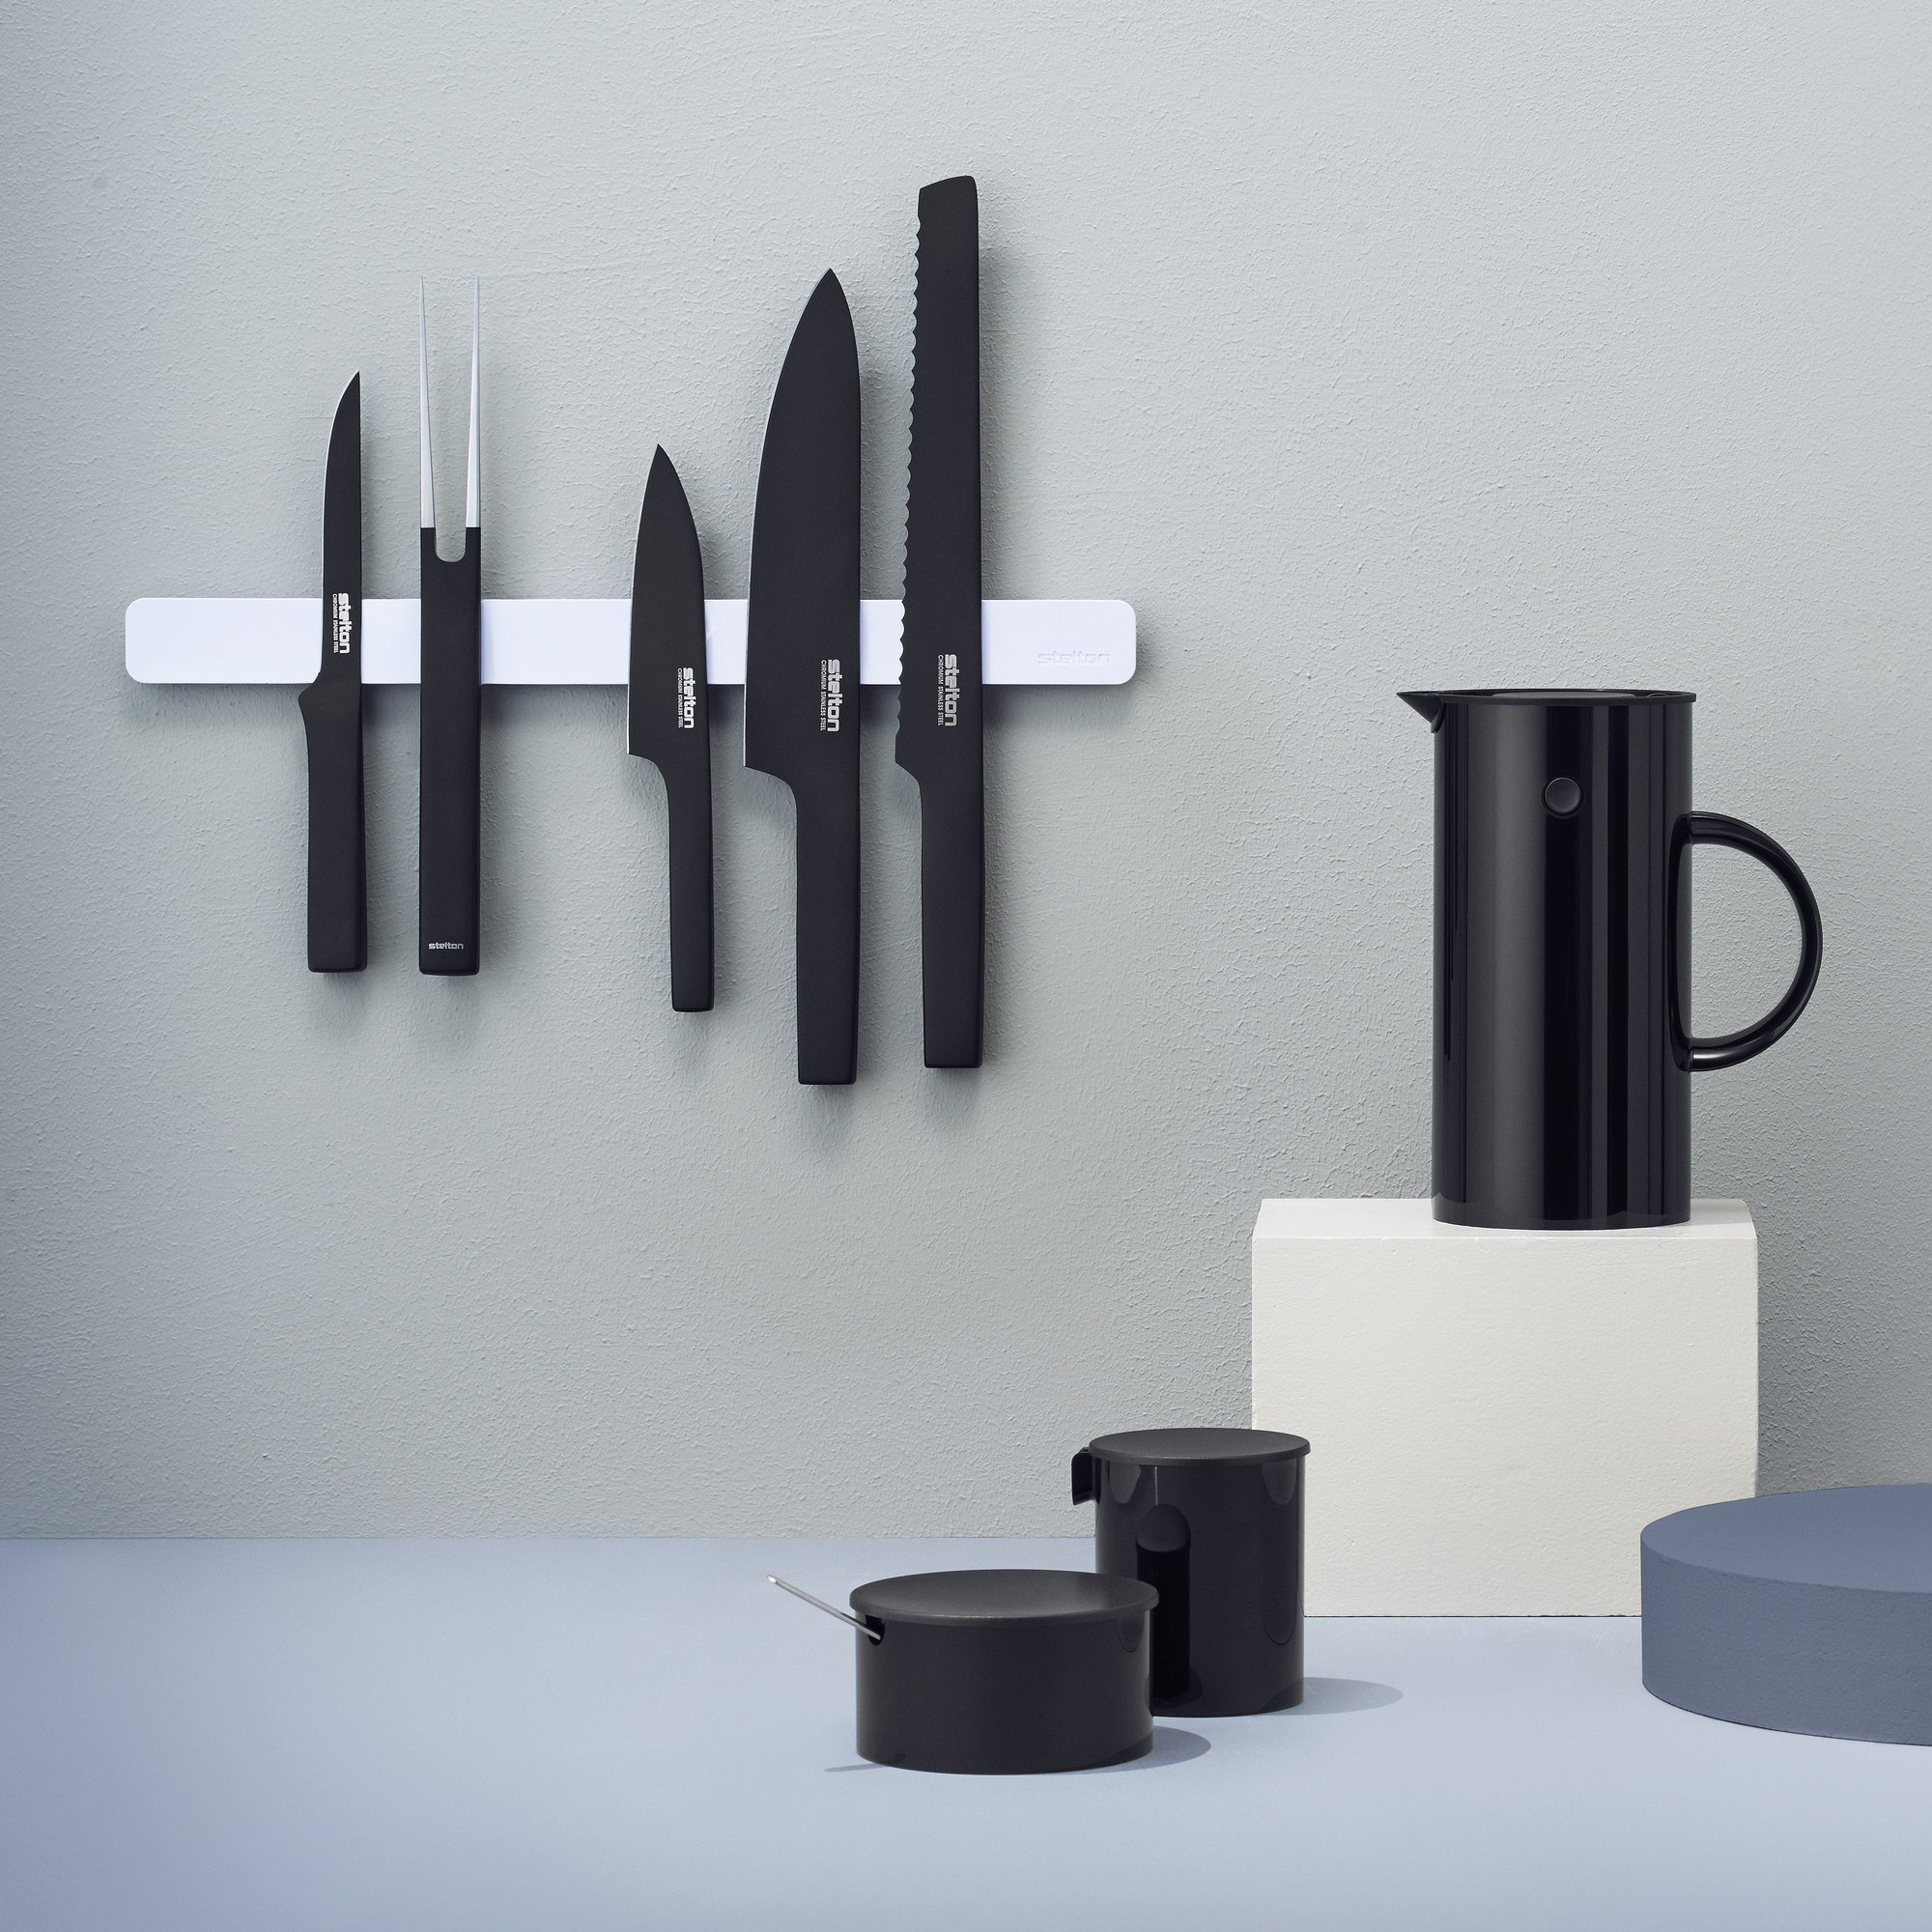 em77 termokande 0 5 liter fra stelton hurtig levering. Black Bedroom Furniture Sets. Home Design Ideas